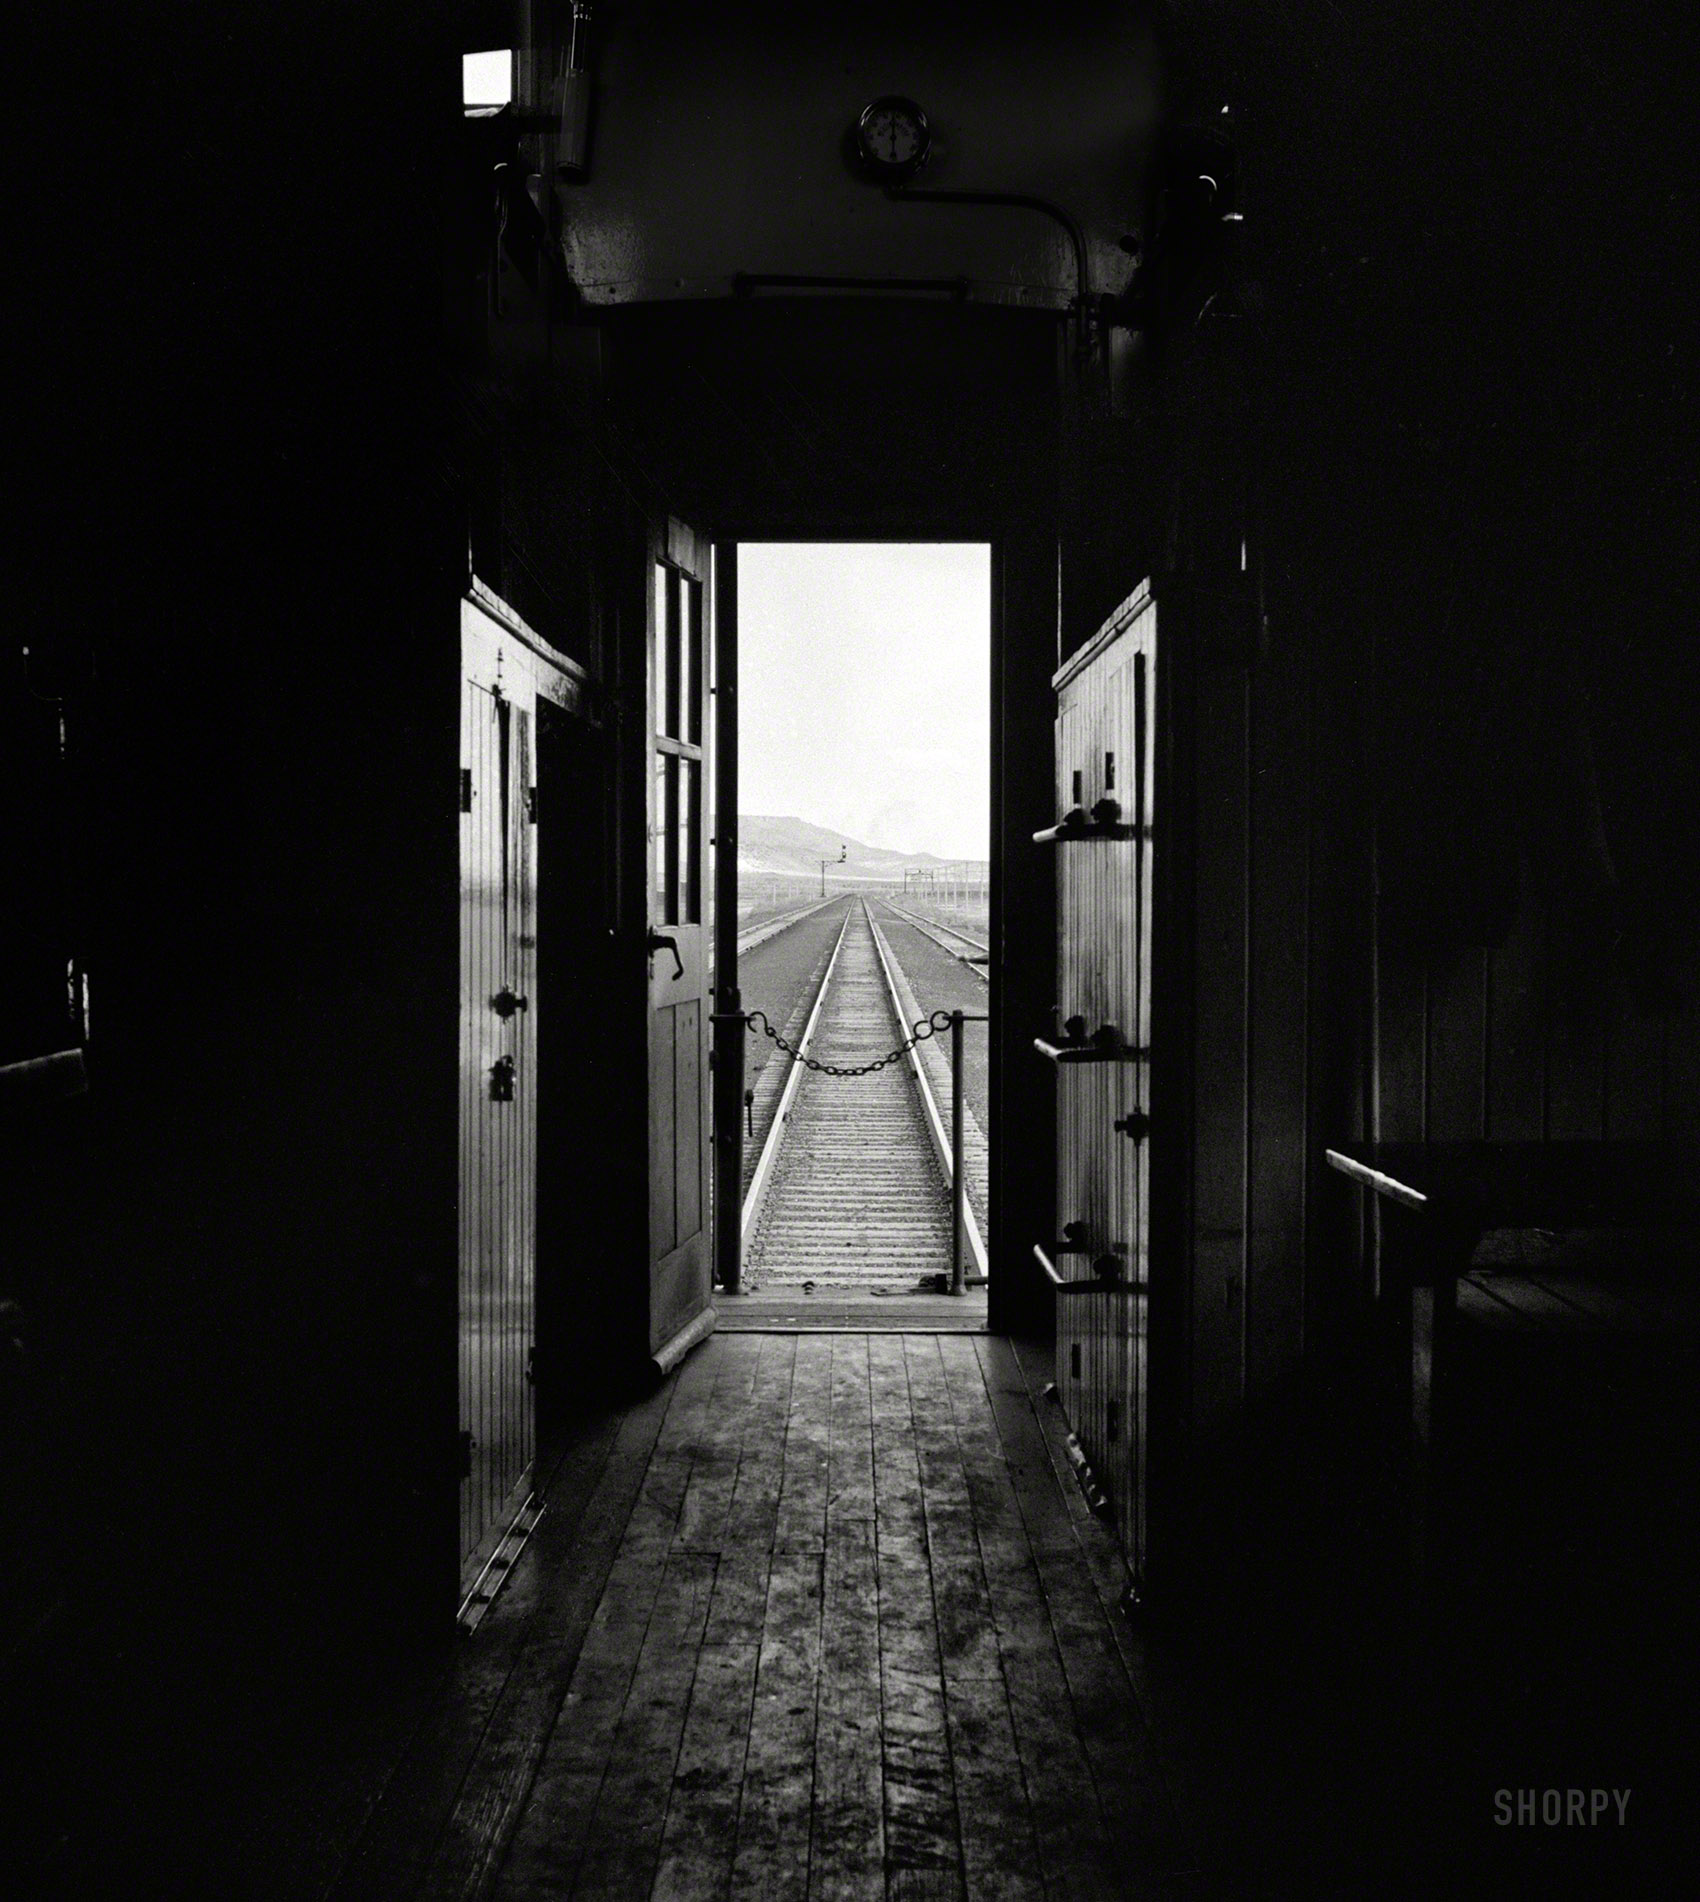 Shorpy Historic Picture Archive  The Doors of Perception 1943 high-resolution photo & Shorpy Historic Picture Archive :: The Doors of Perception: 1943 ...